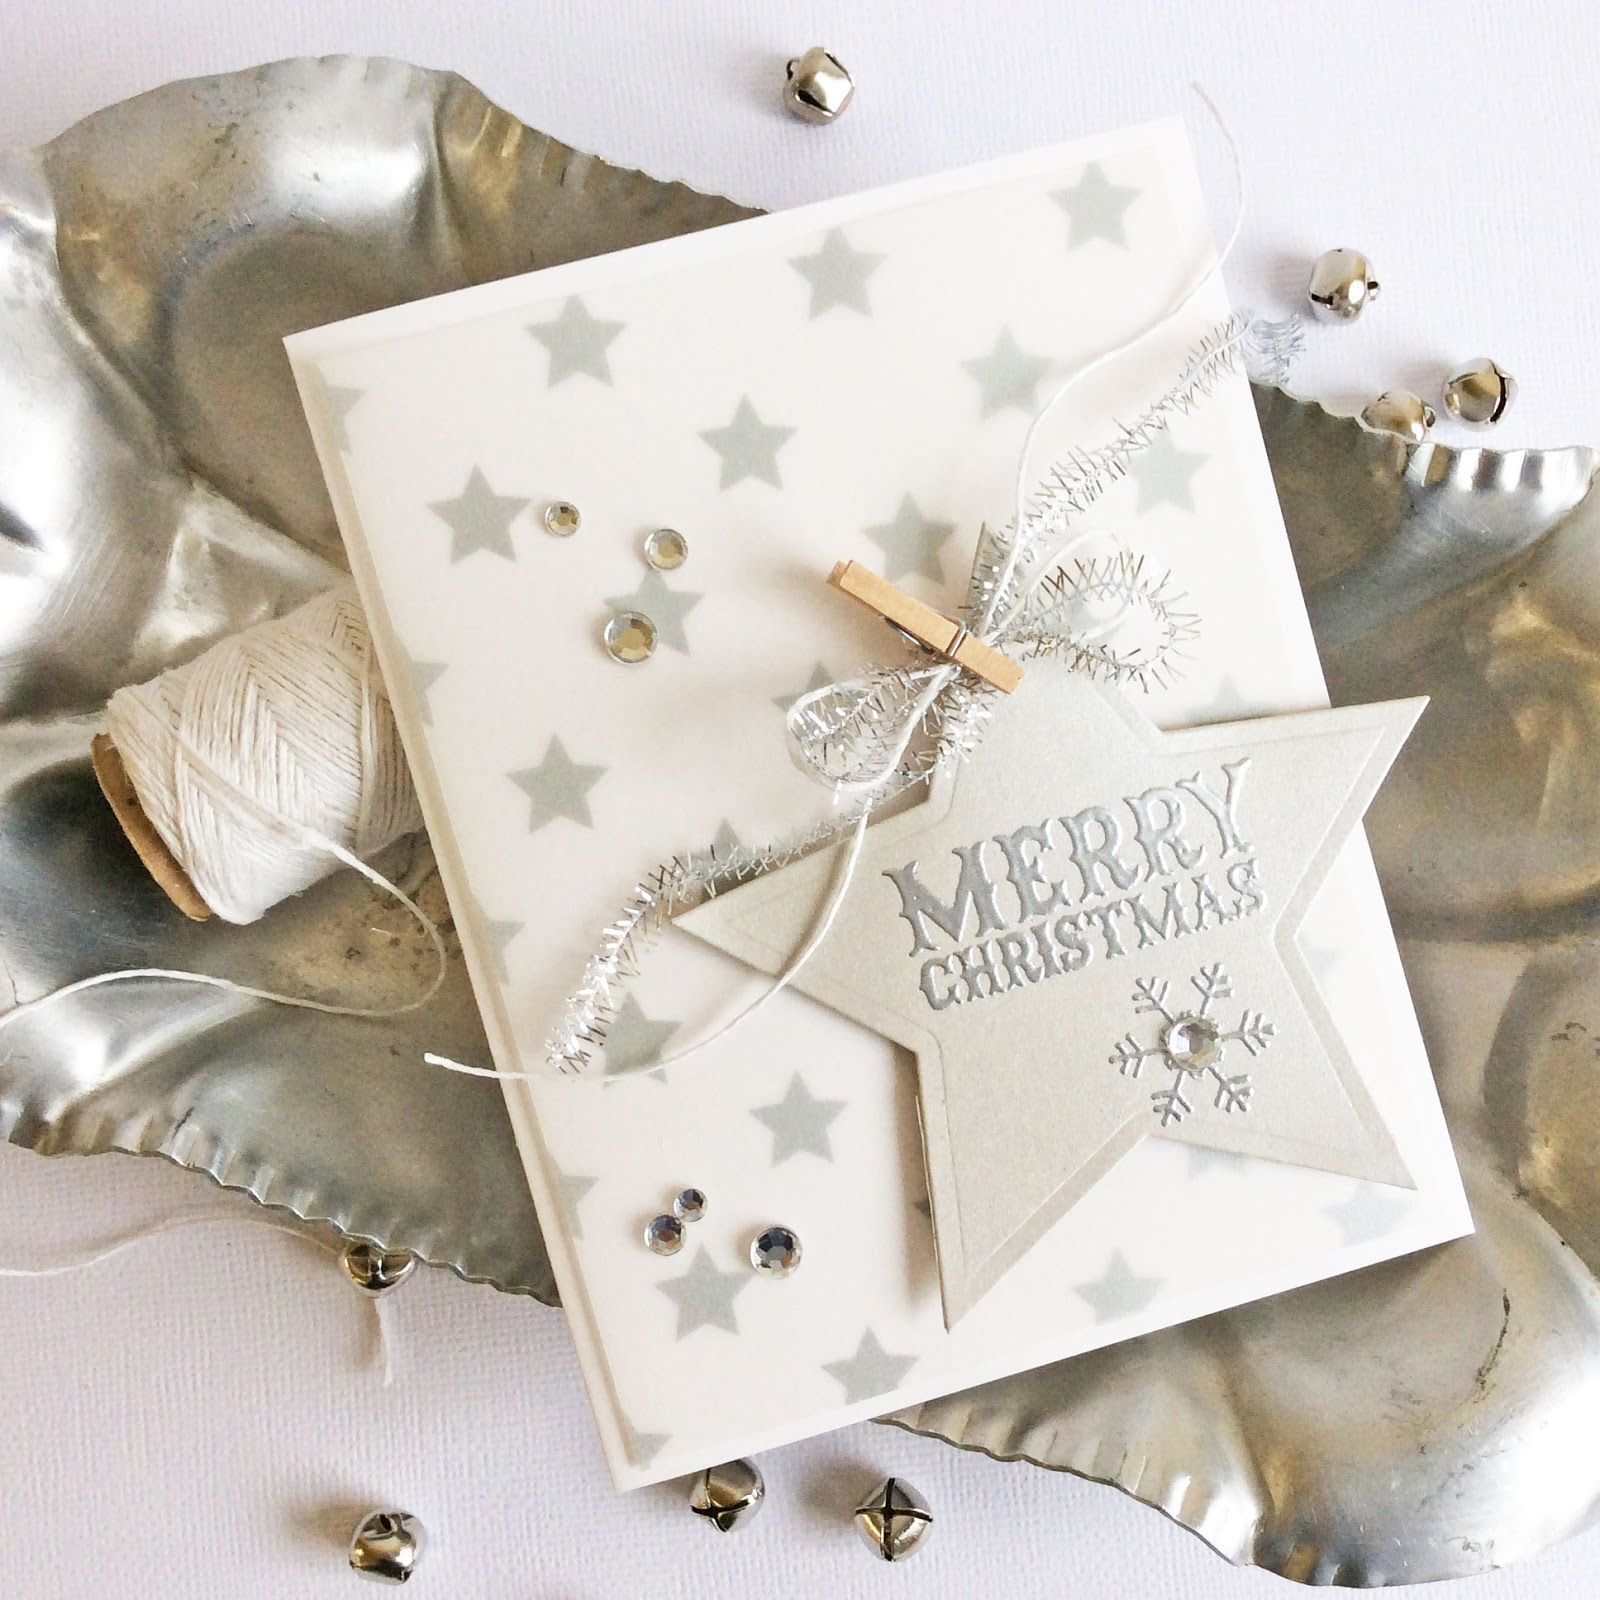 Card-Blanc by Kathy Martin: 7 Days of Sparkle - Fun Stampers Journey Style | Merry Christmas